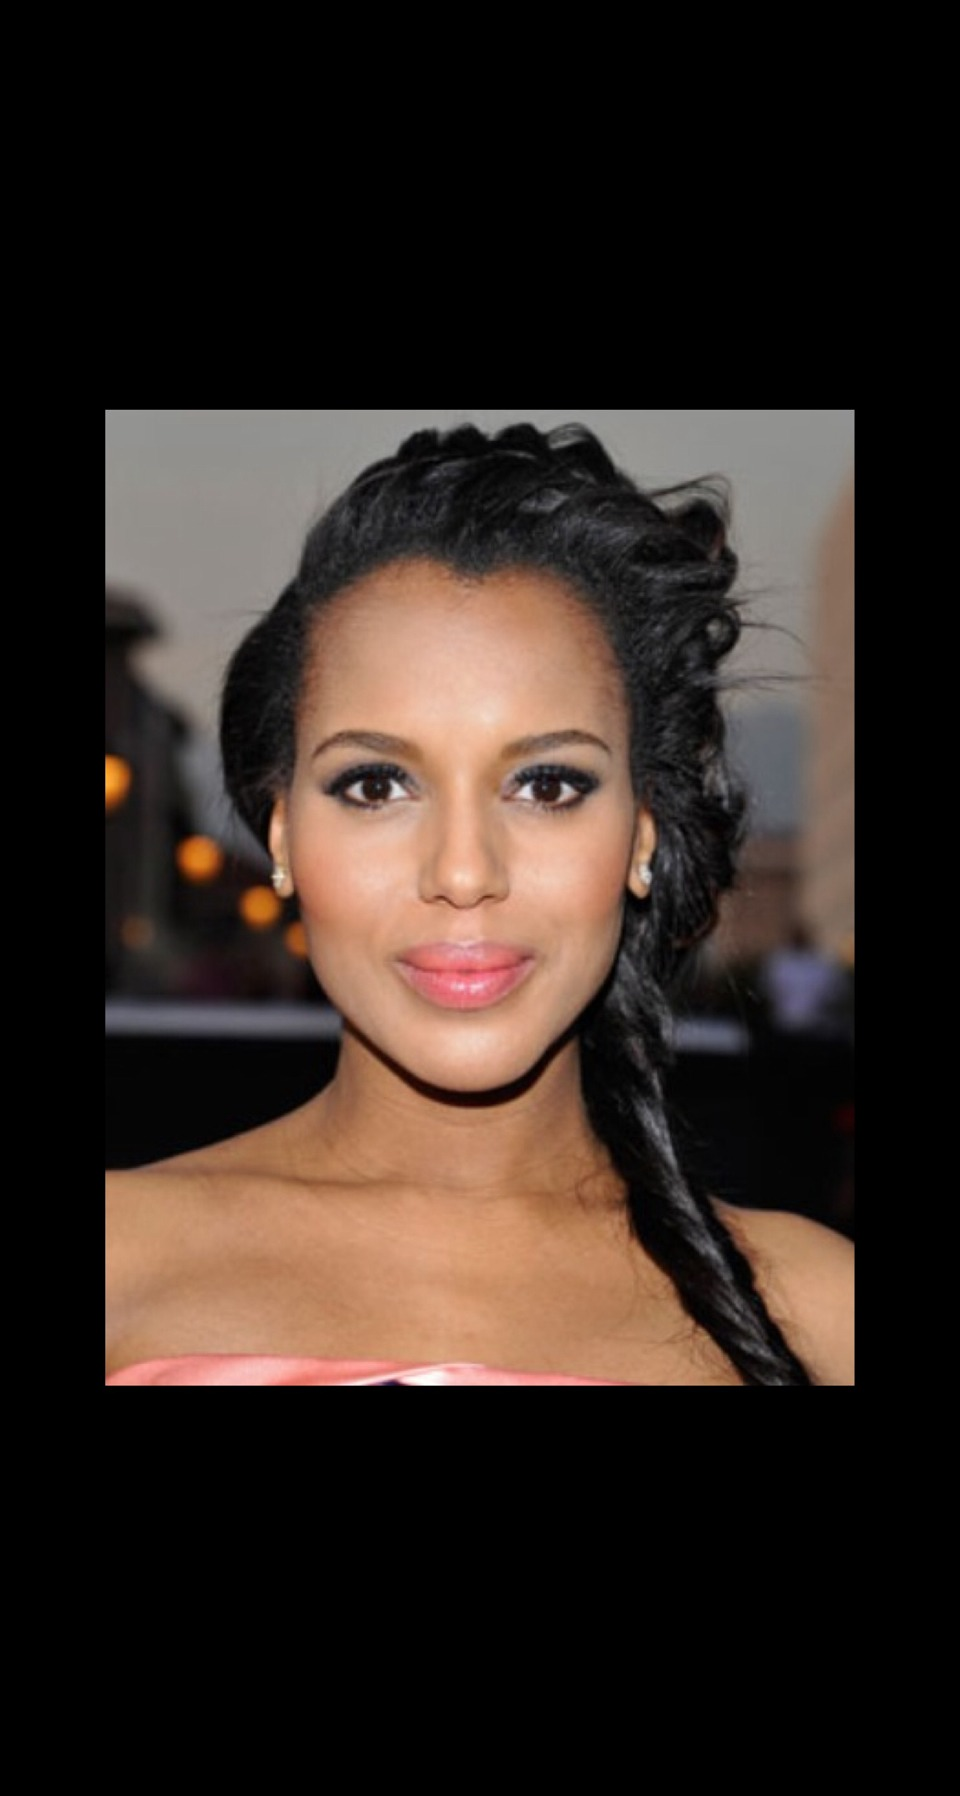 TWISTED SIDE BRAID Kerry Washington glowed on the red carpet at the NAACP Image Awards with a flushed cheek and pale pink lip, but we love that she tried out something new with her hair – a twisted side braid. The messier the better. Just tug at it when finished to achieve the desired look.